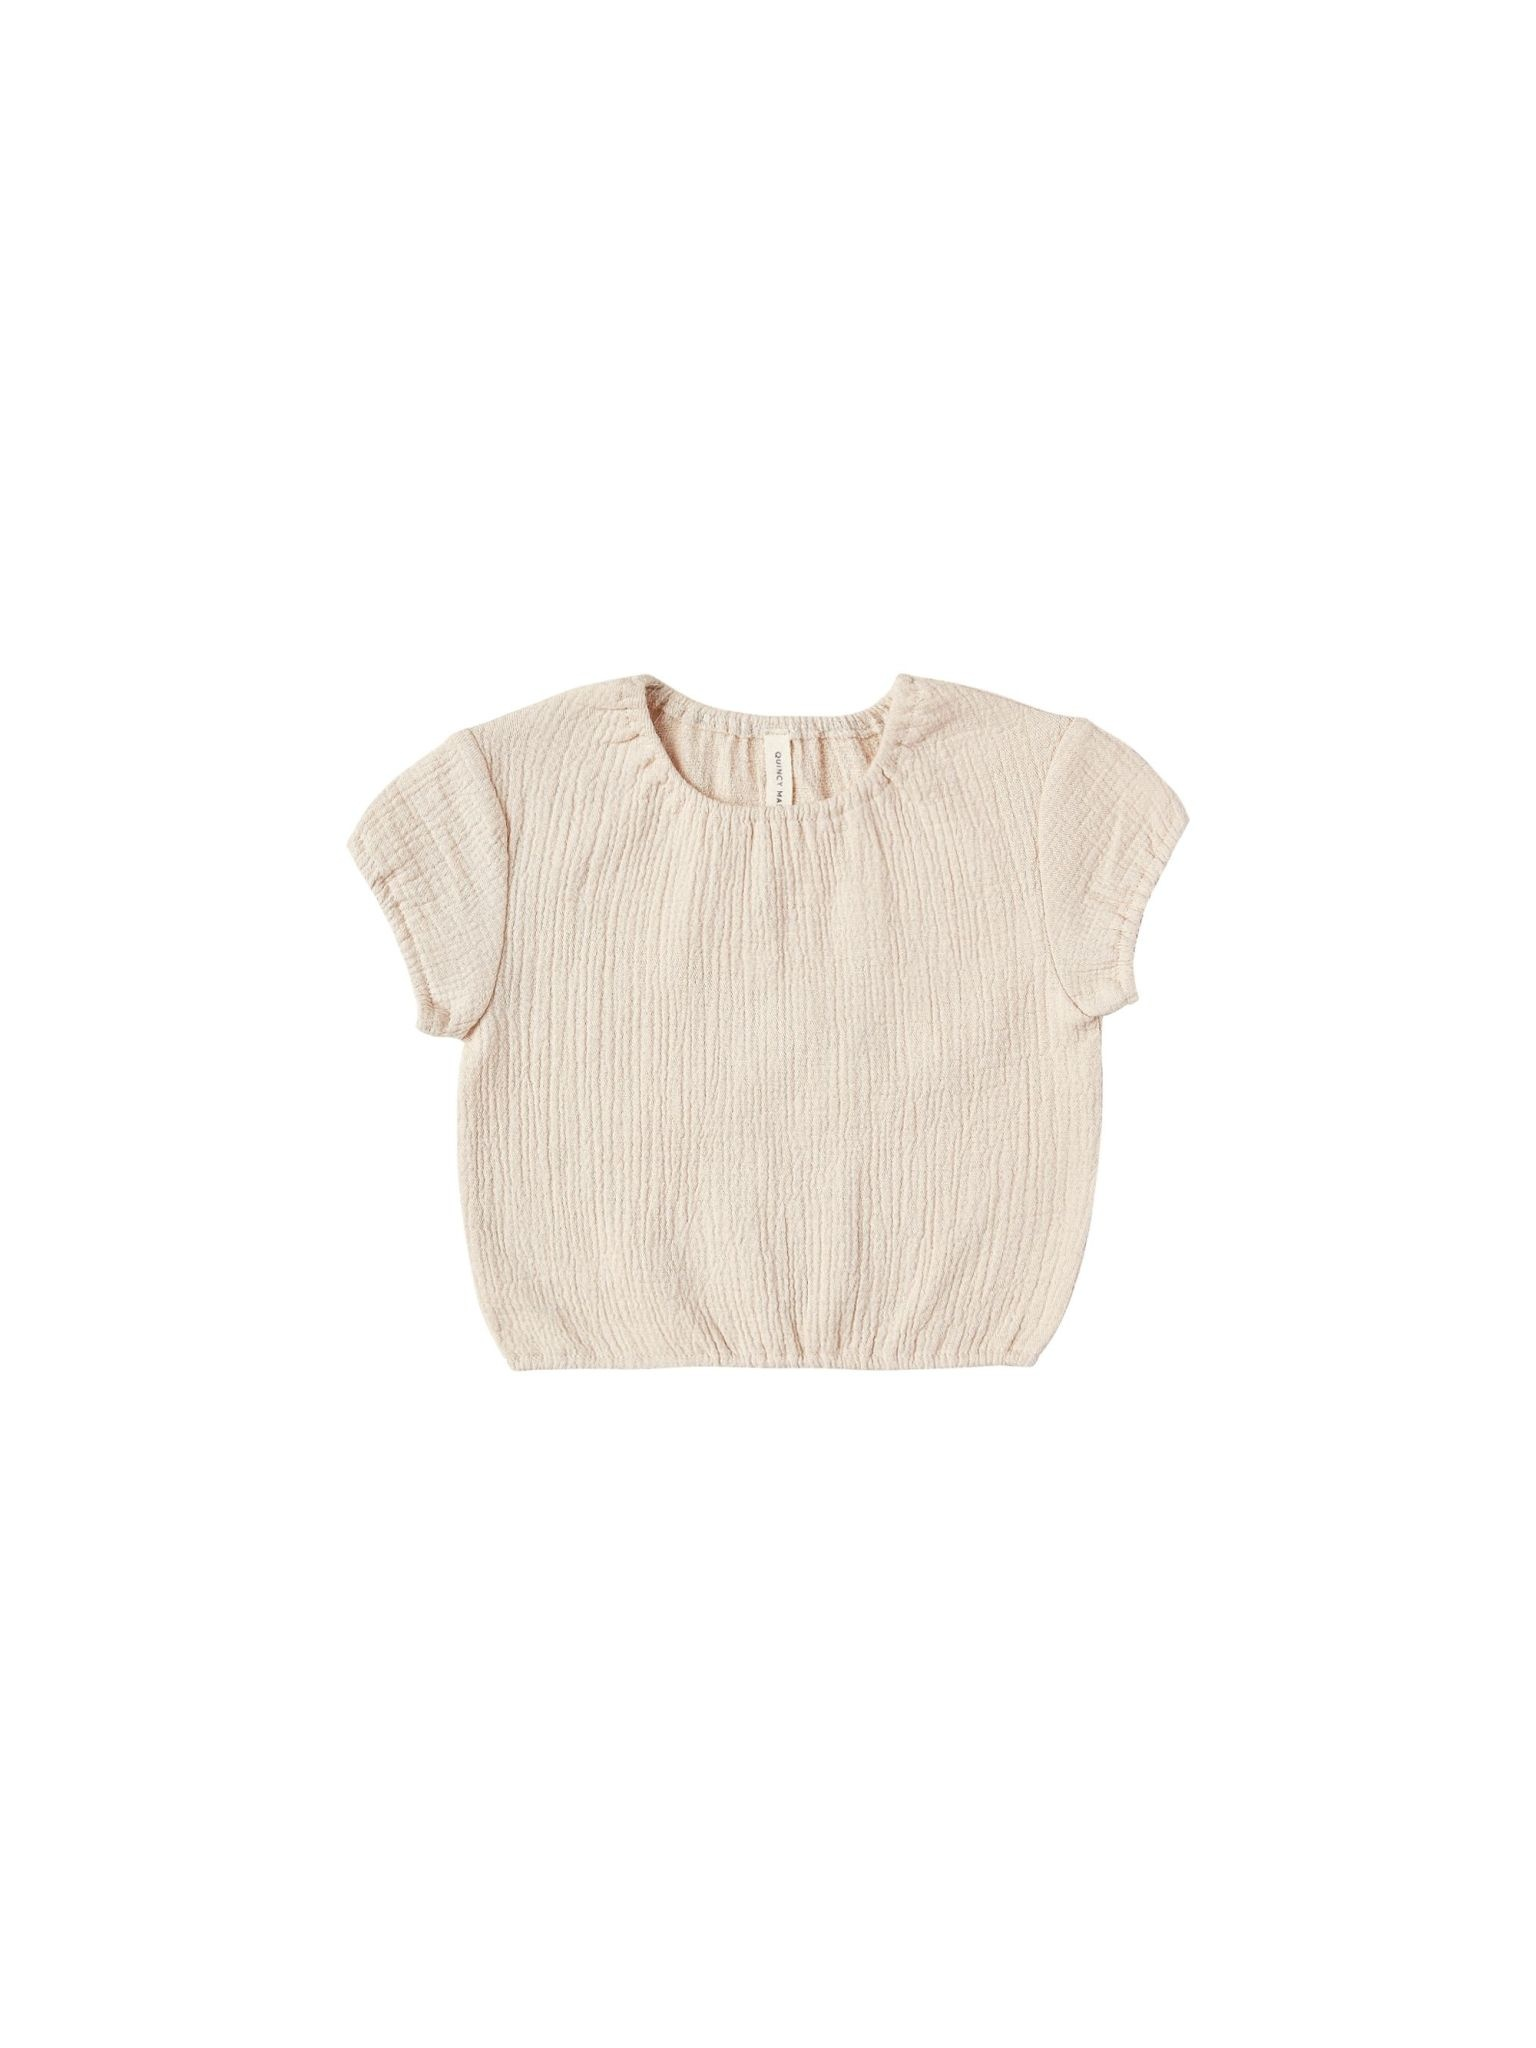 QUINCY MAE Organic Cotton Cinched Woven Tee